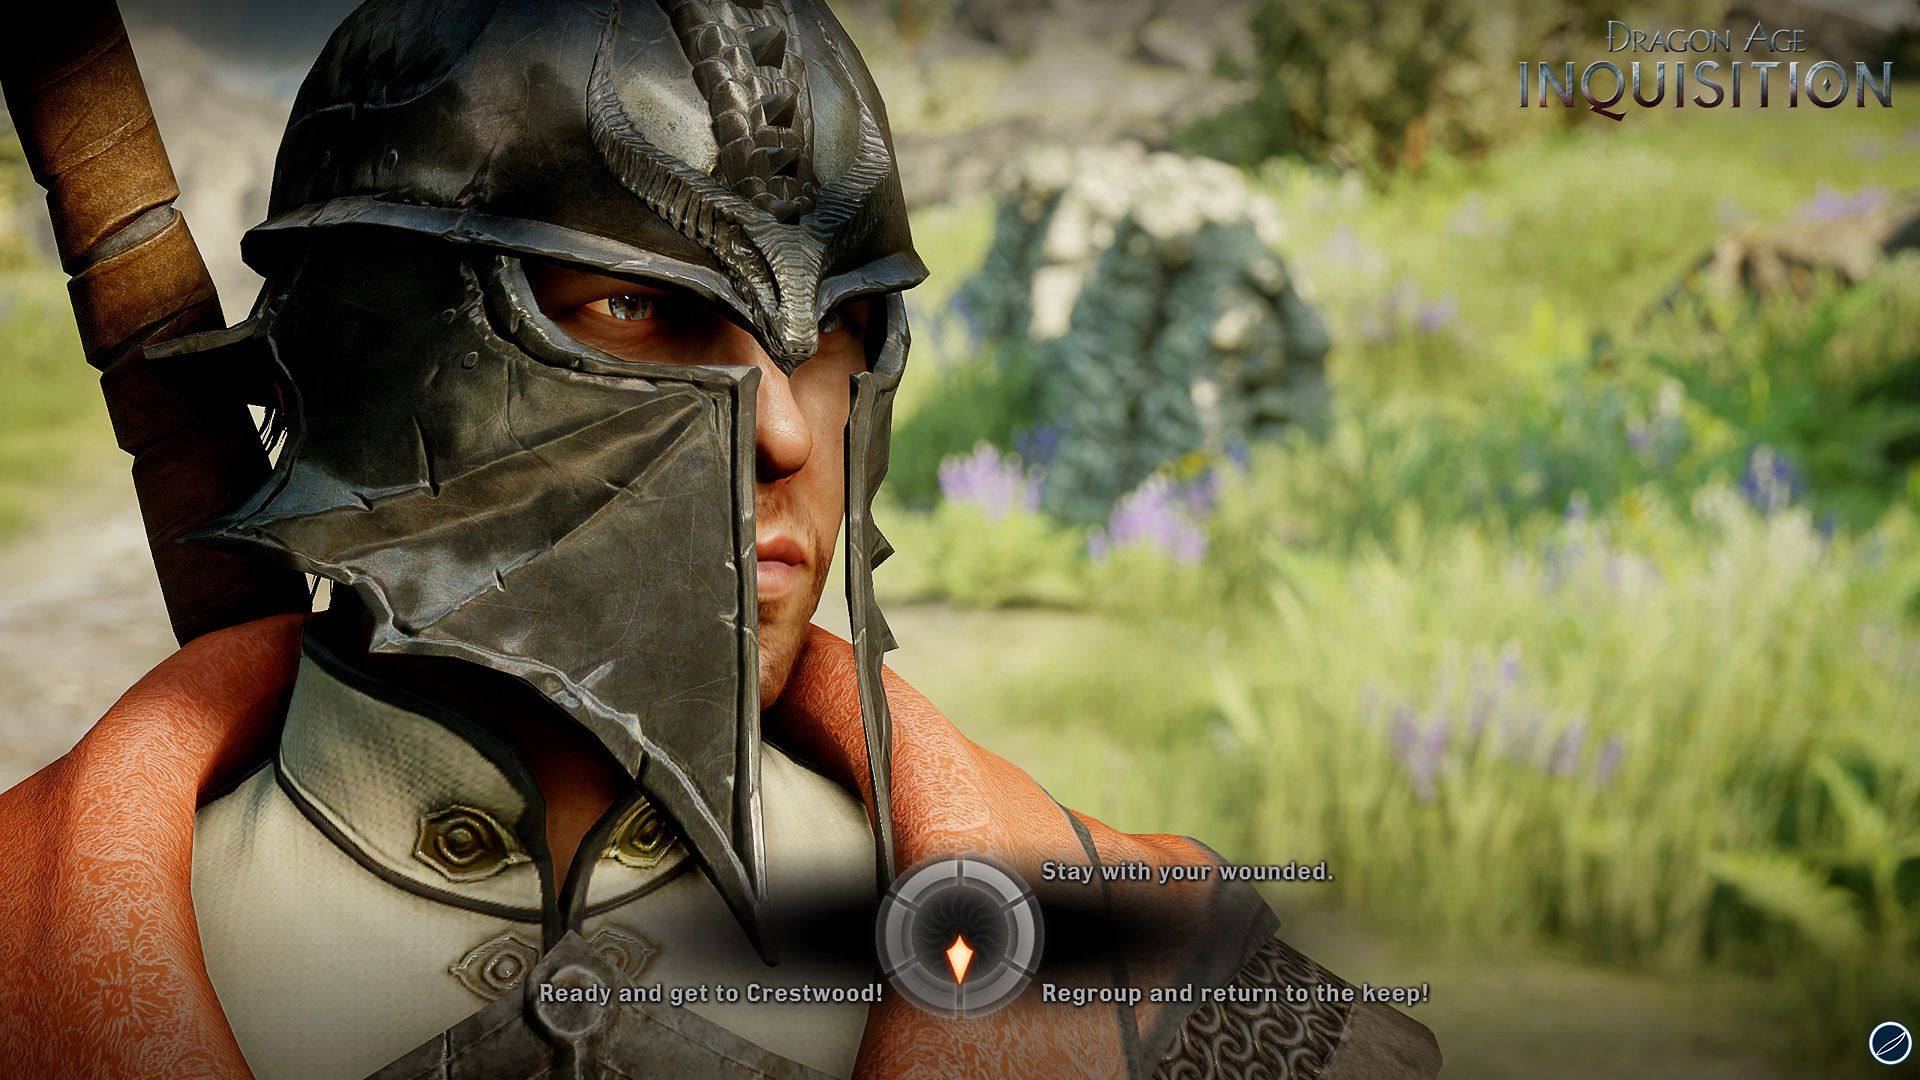 dragon-age-inquisition_PC_w_4756.jpg